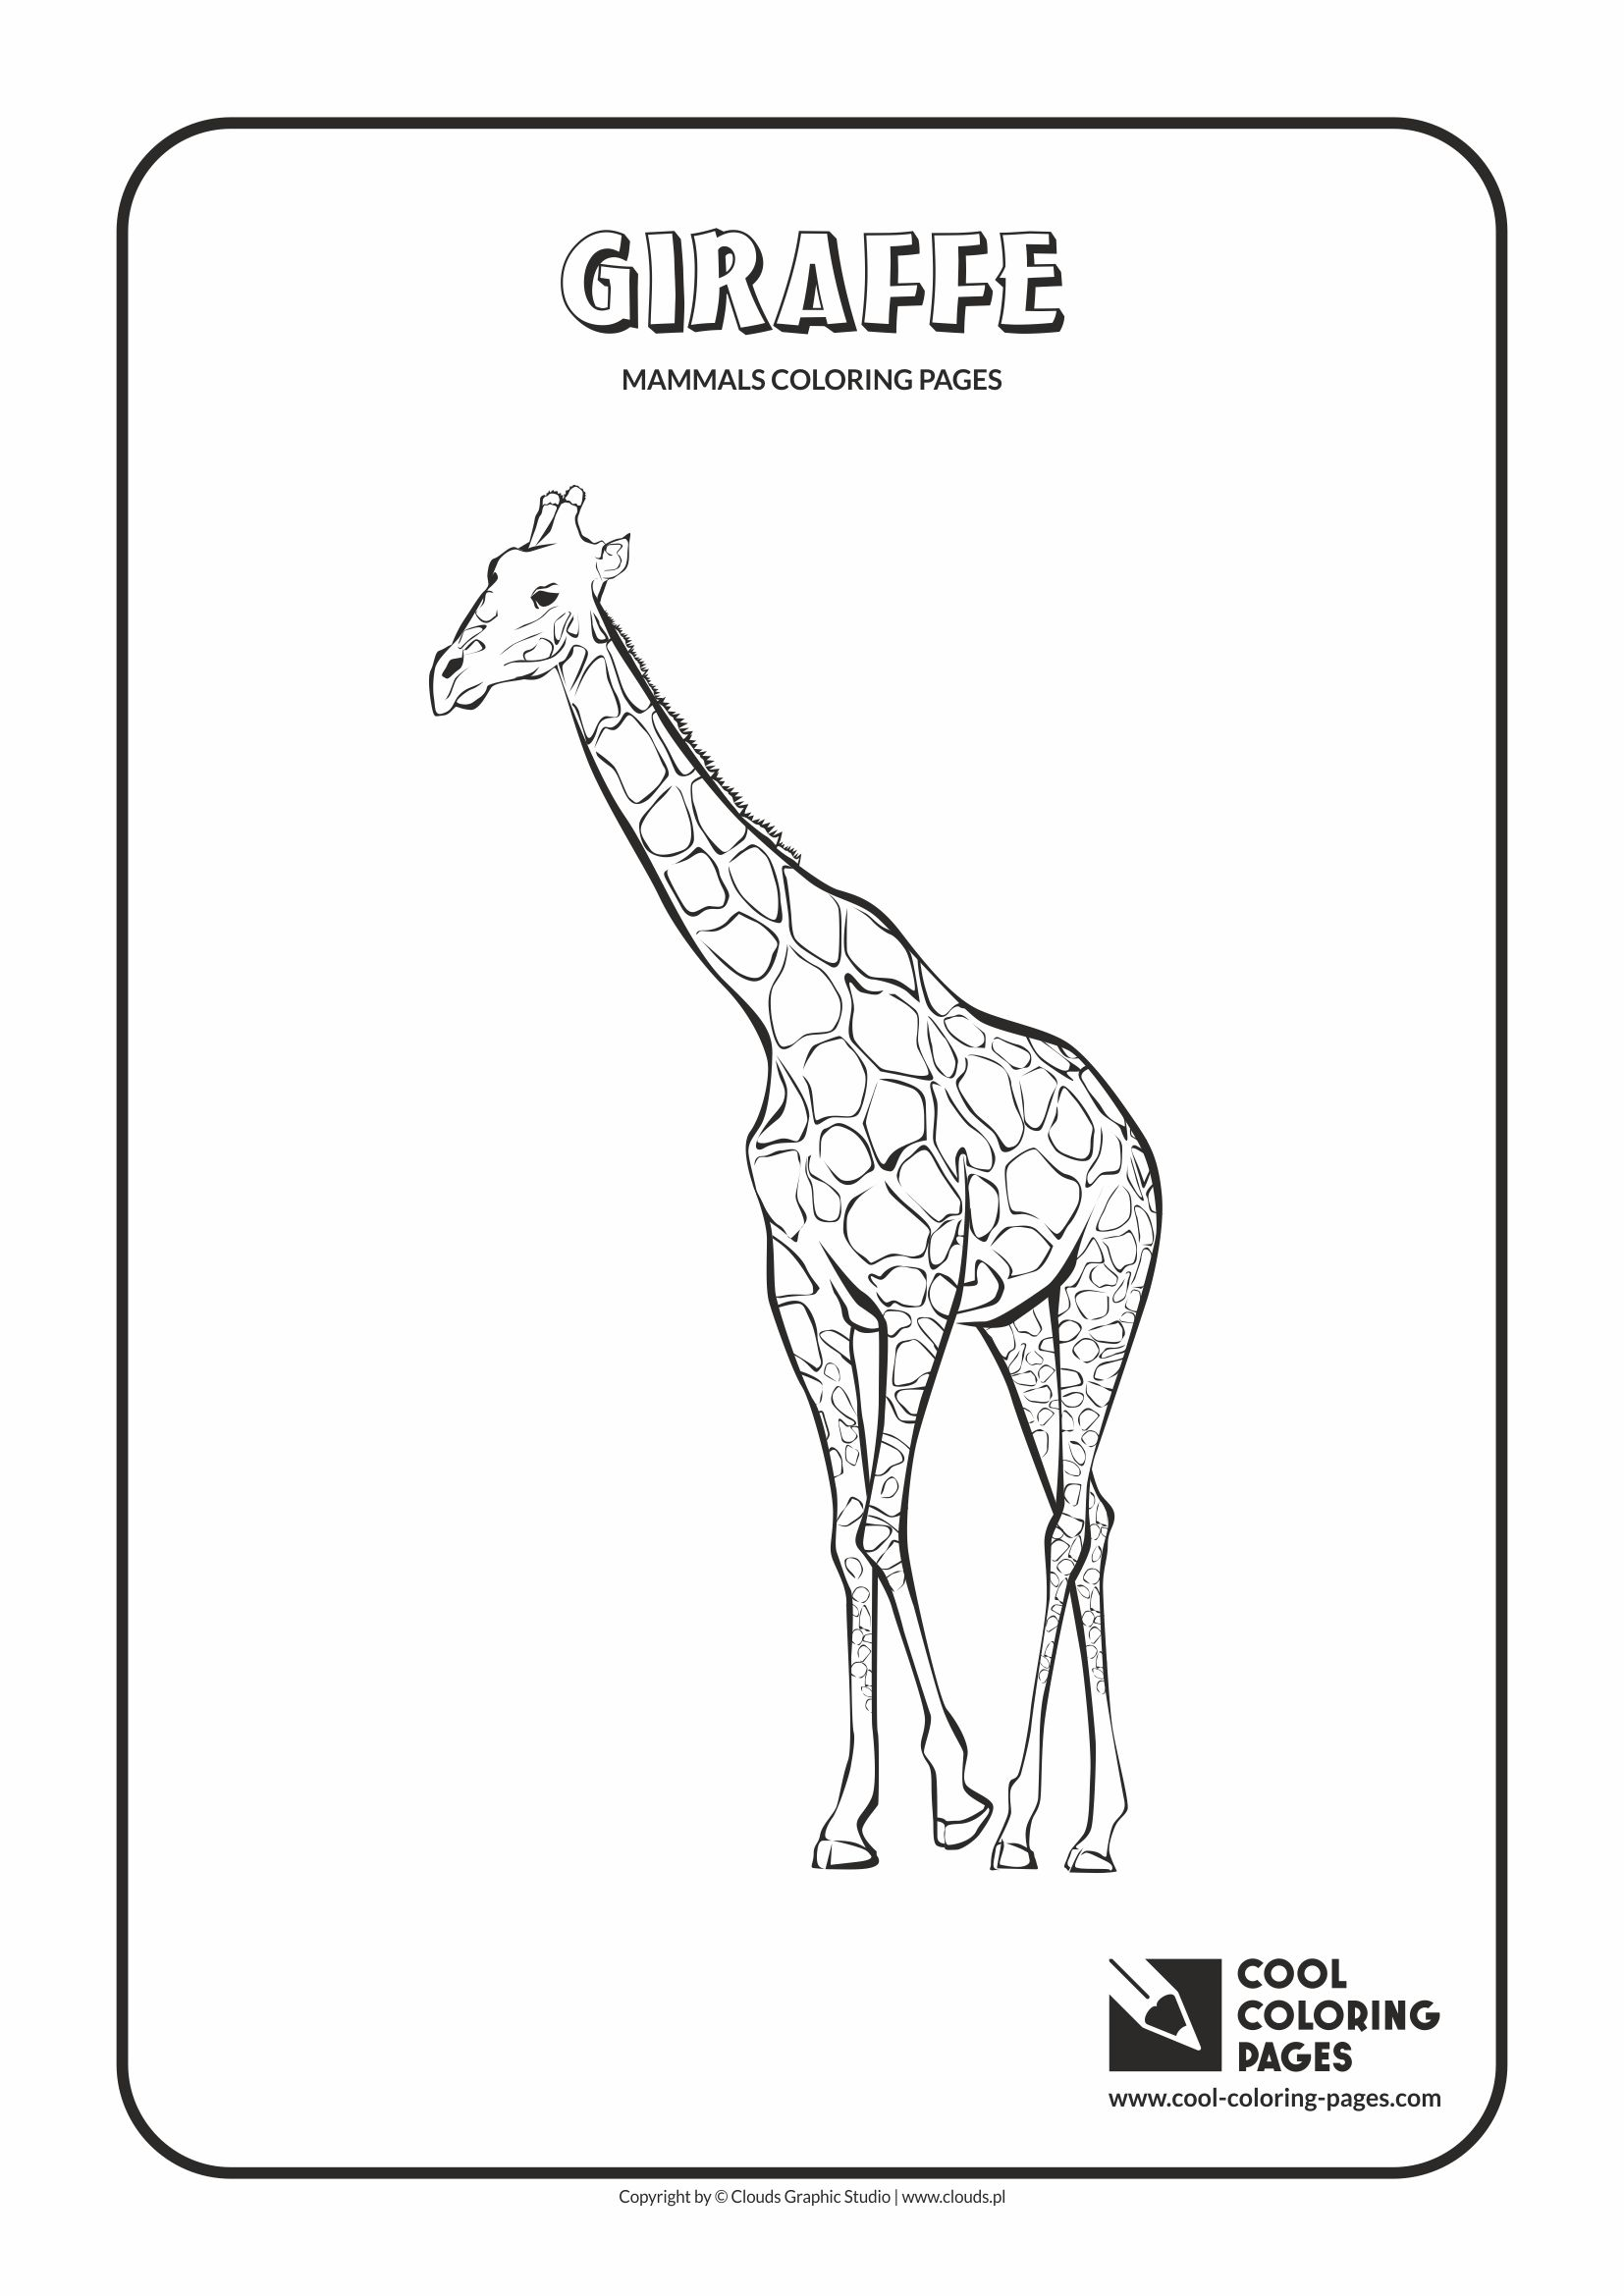 Cool Coloring Pages - Animals / Giraffe / Coloring page with giraffe